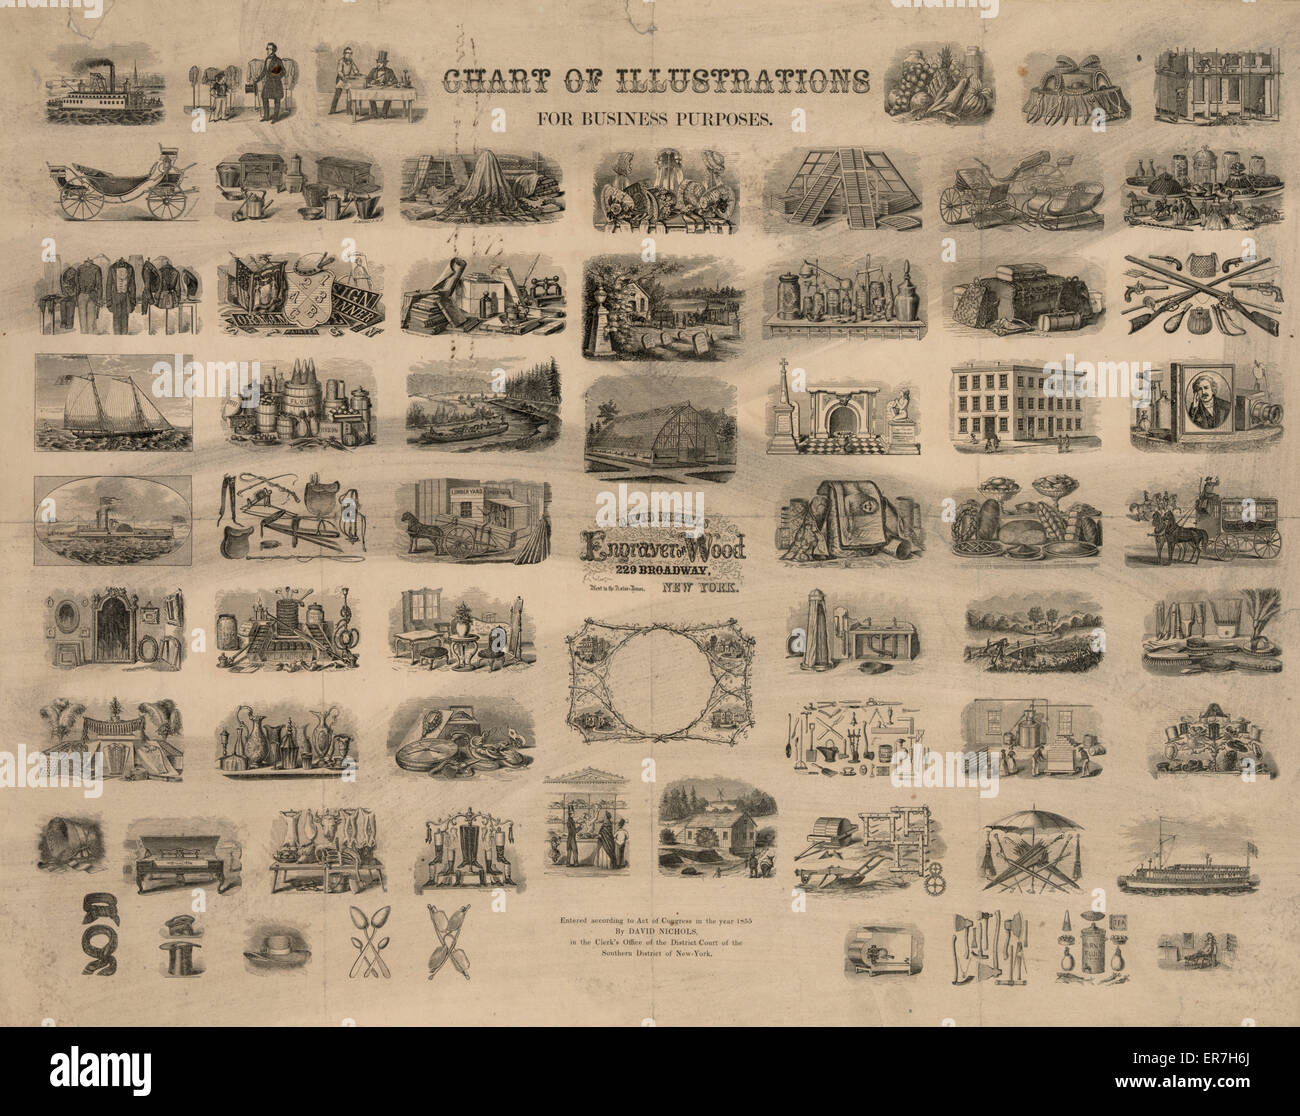 Tableau des illustrations à des fins commerciales. Date c1855. Photo Stock